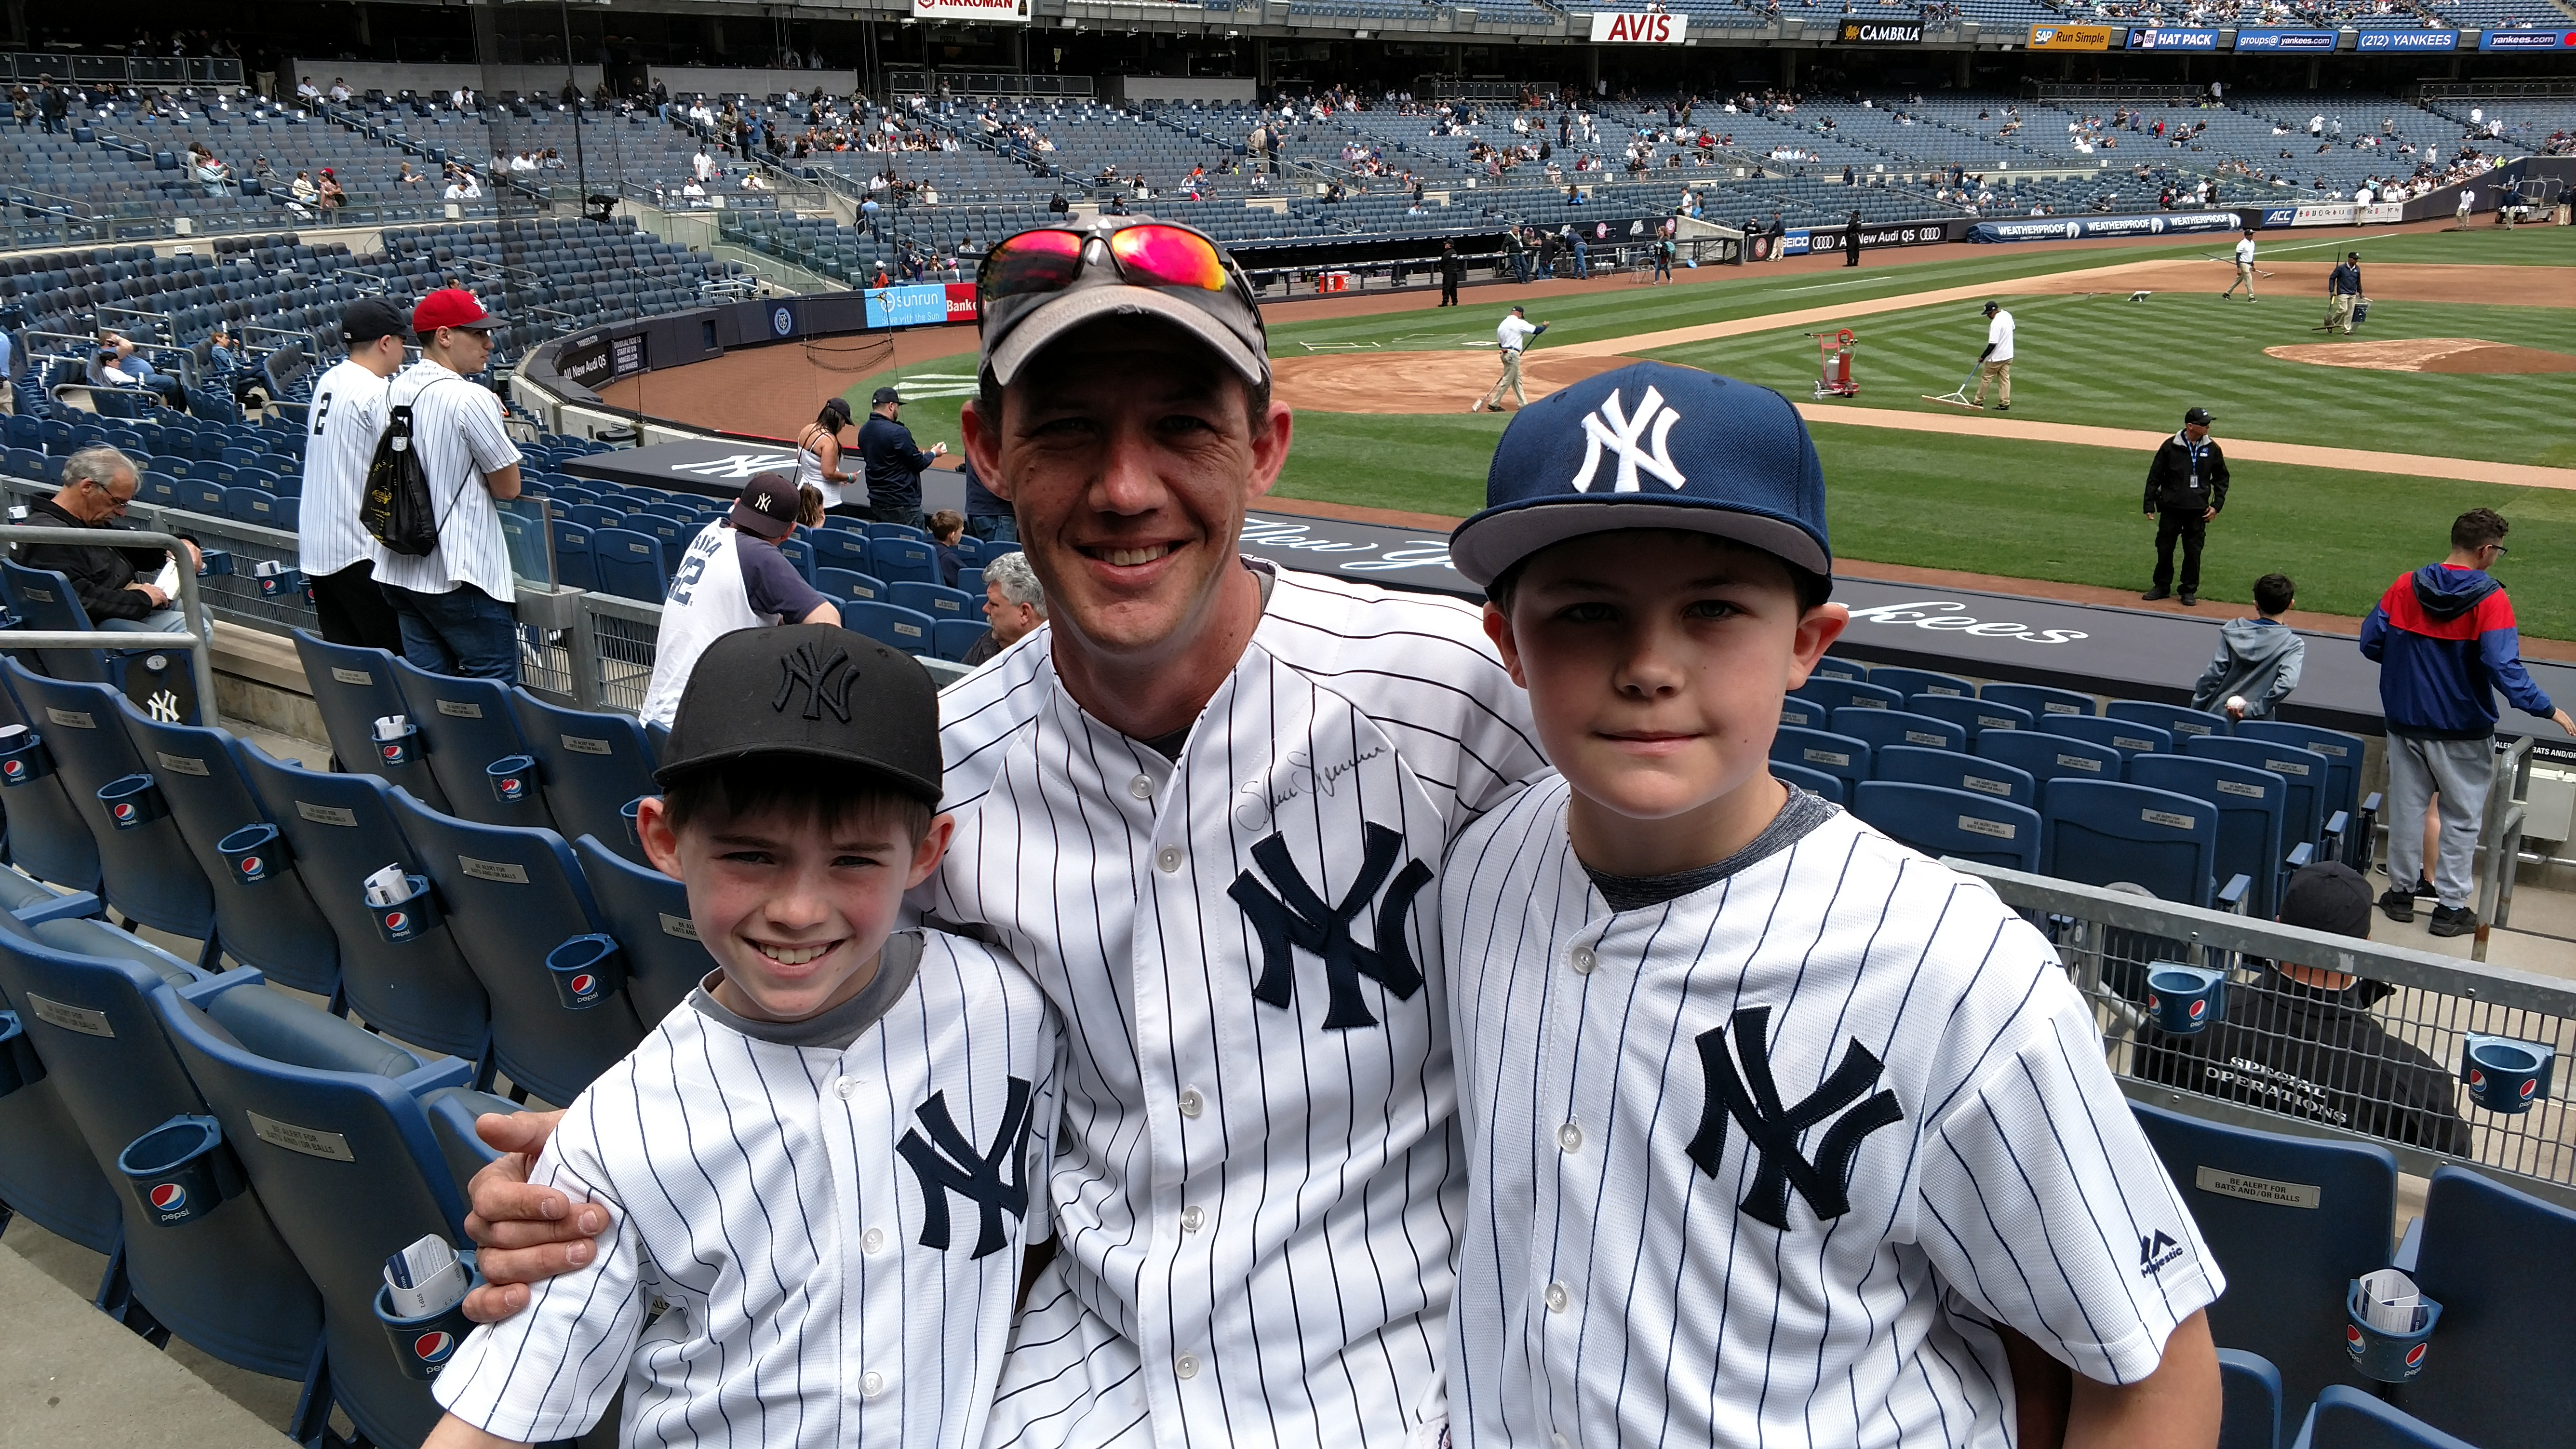 Jason Jacobus with his sons Cole (left) and Jared (right) at a recent New York Yankees game at Yankee Stadium, Bronx, NY. http://www.minutemanpressfranchise.com